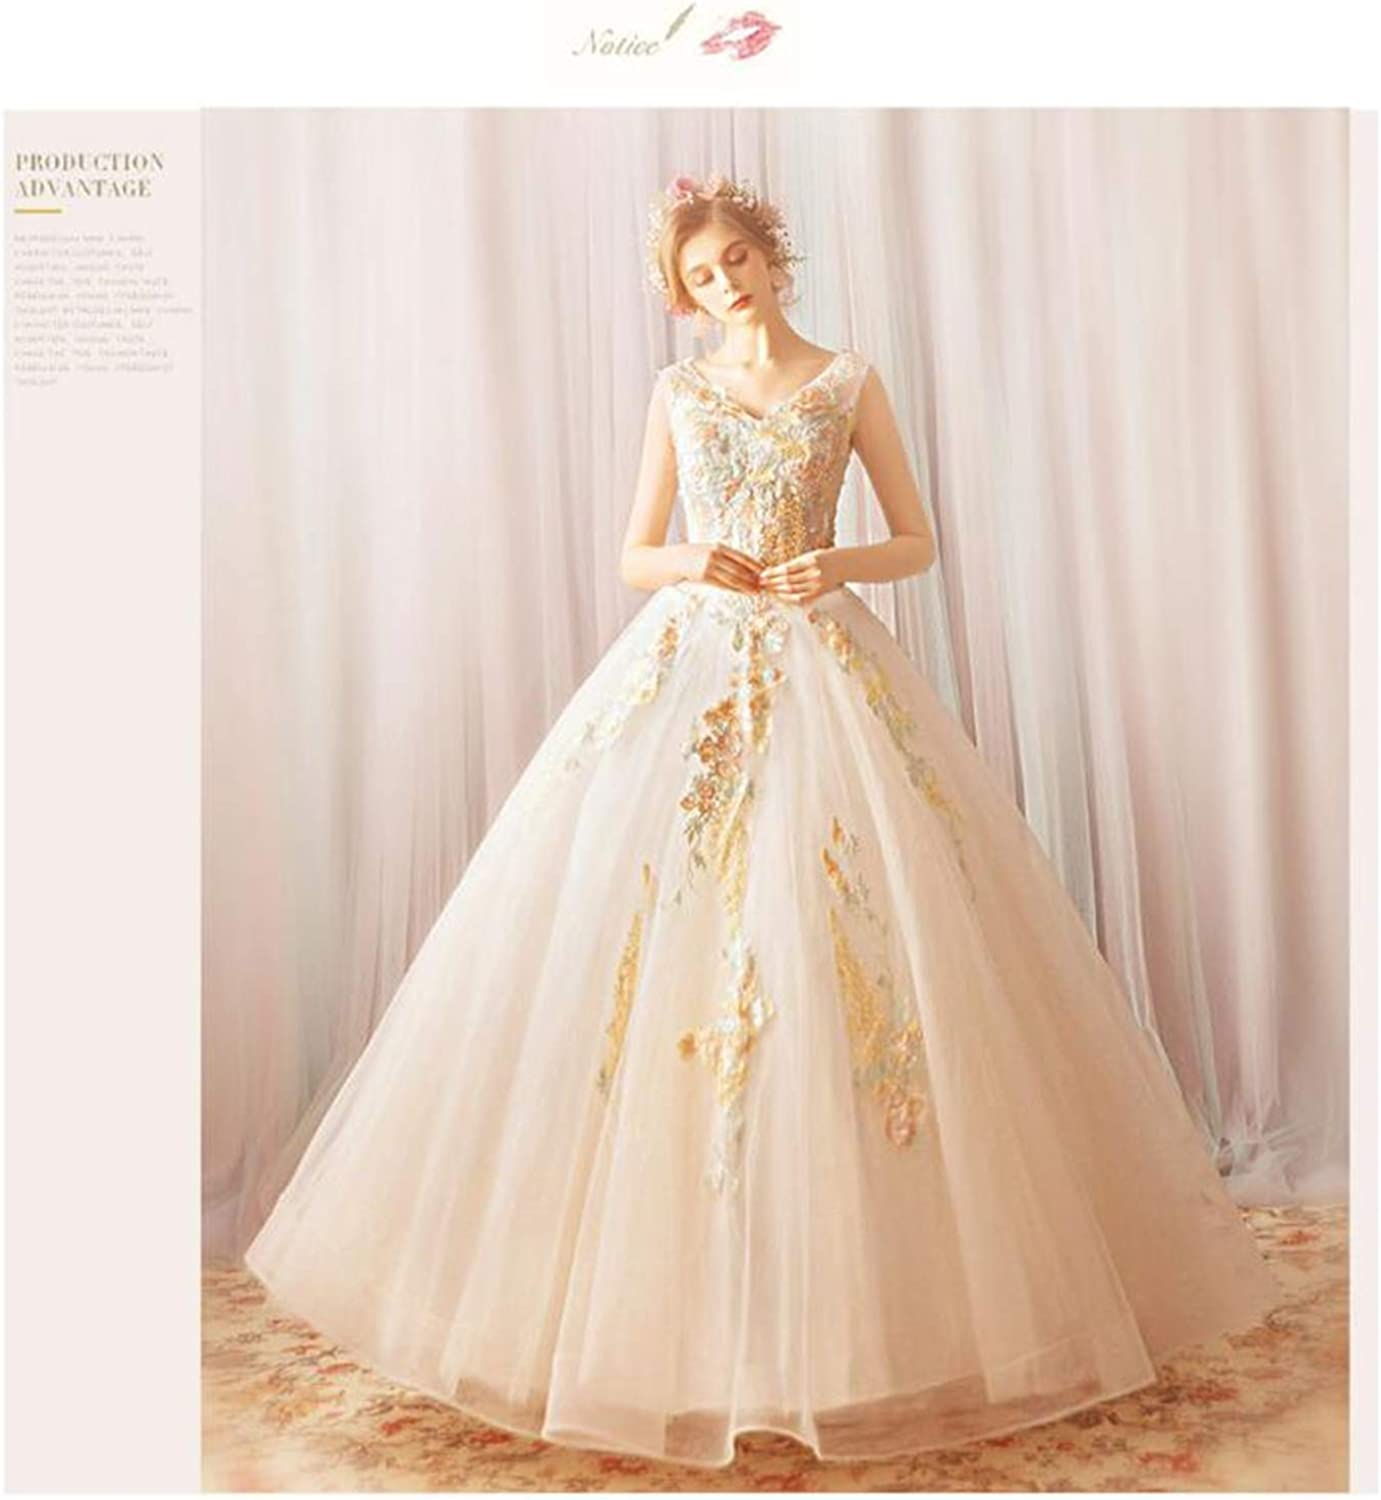 Wedding Dress,Tulle Lace Embroidered Flower Wedding Dress, Floor Length Round Dress, White